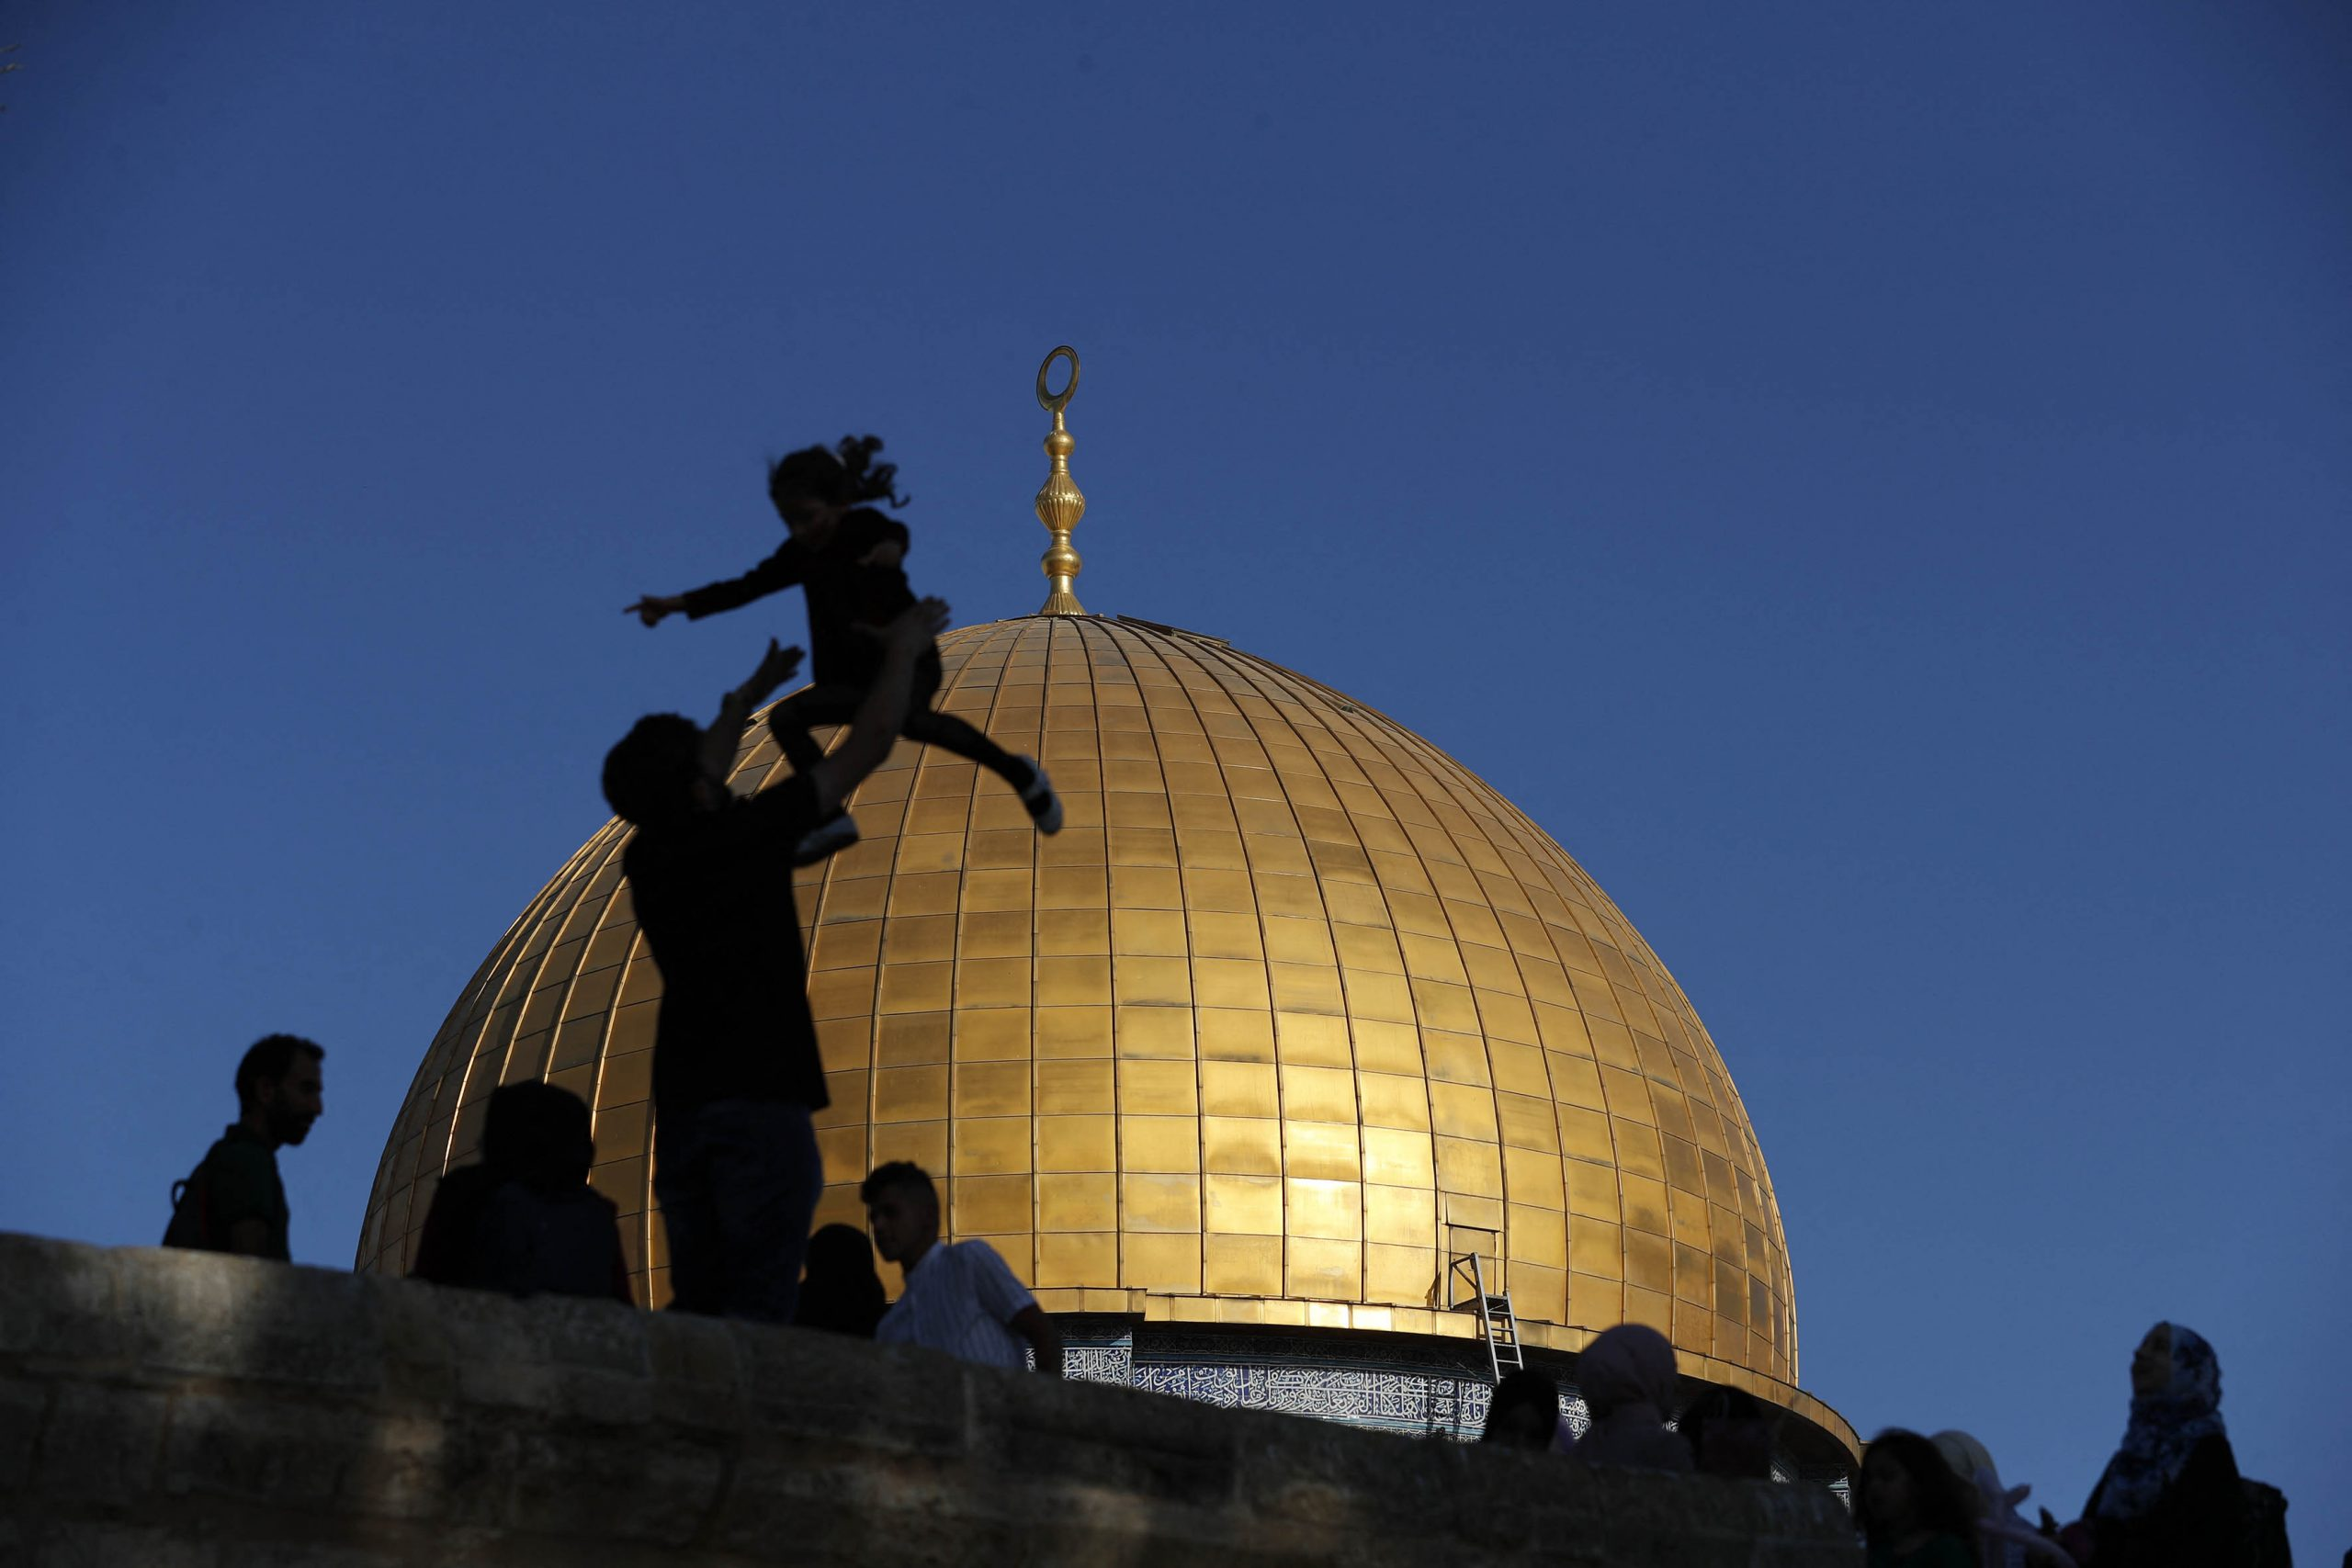 13 May 2021: Muslim worshippers in front of the Dome of the Rock before the morning Eid al-Fitr prayer that marks the end of Ramadan, at the Al Aqsa Mosque compound in Old Jerusalem. (Photograph by Ahmad Gharabli/ AFP)